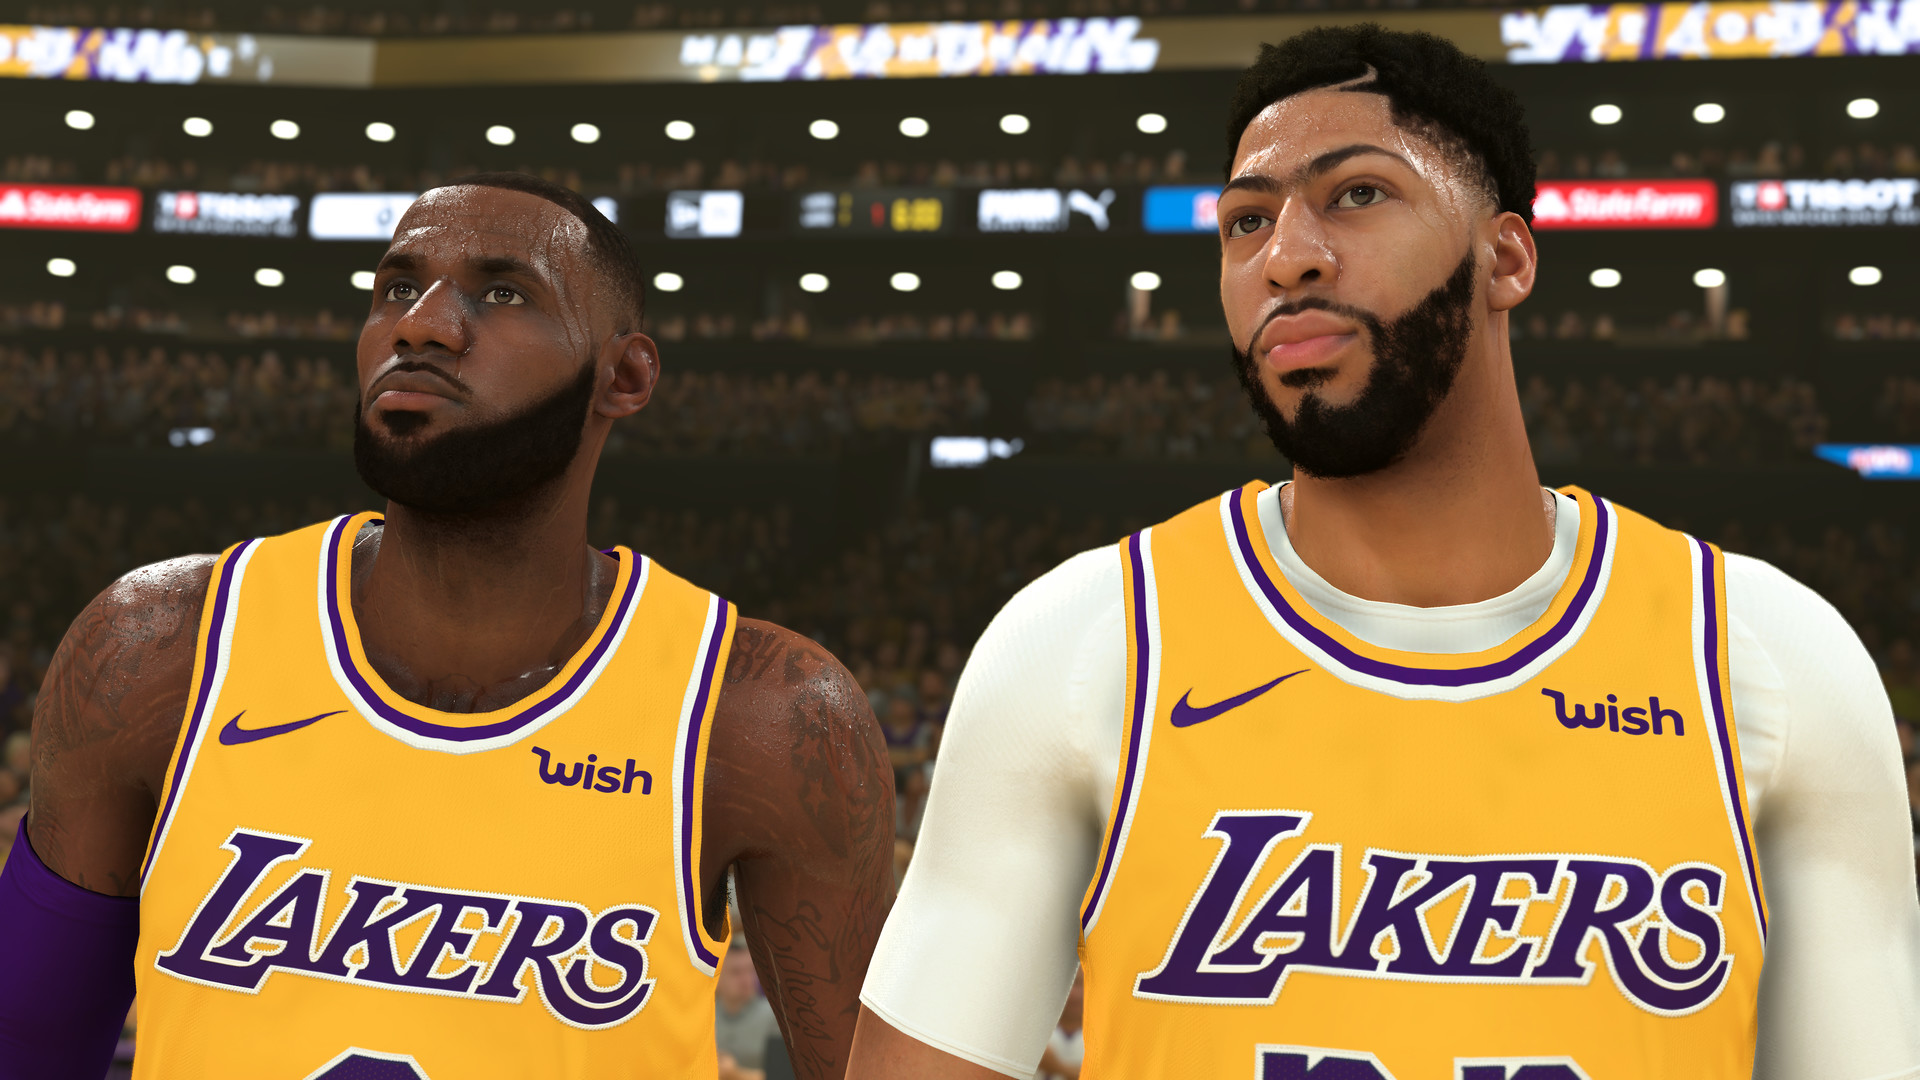 20 Simmed Seasons Of Nba 2k20 Beat L A No Way 2k Loves The Lakers Venturebeat